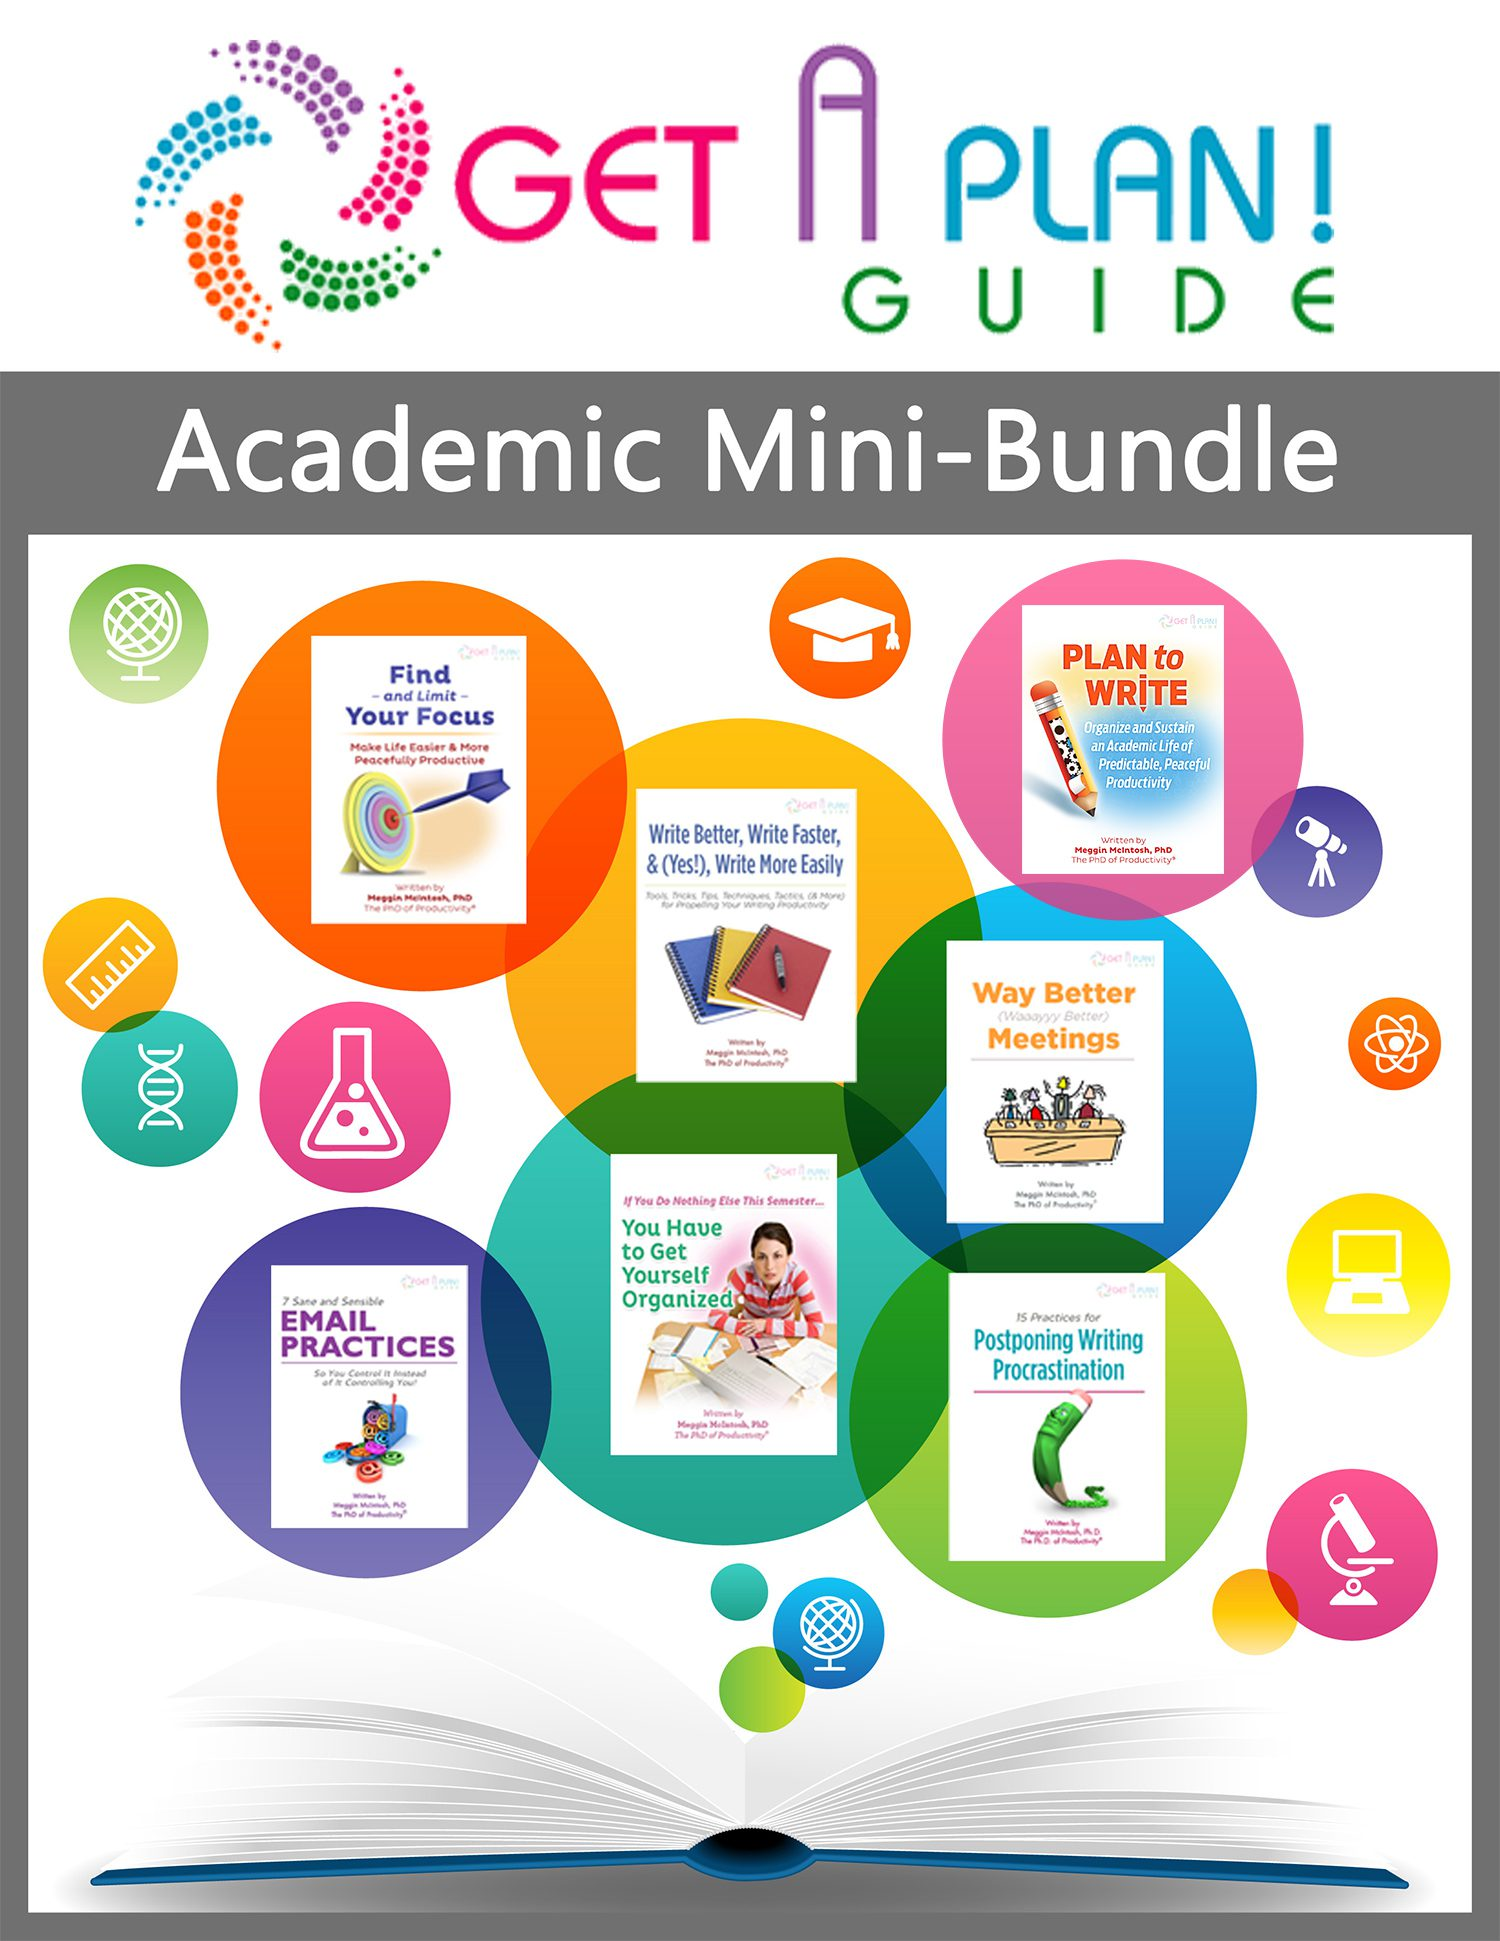 Get a Plan! Guide — Academic Mini-Bundle